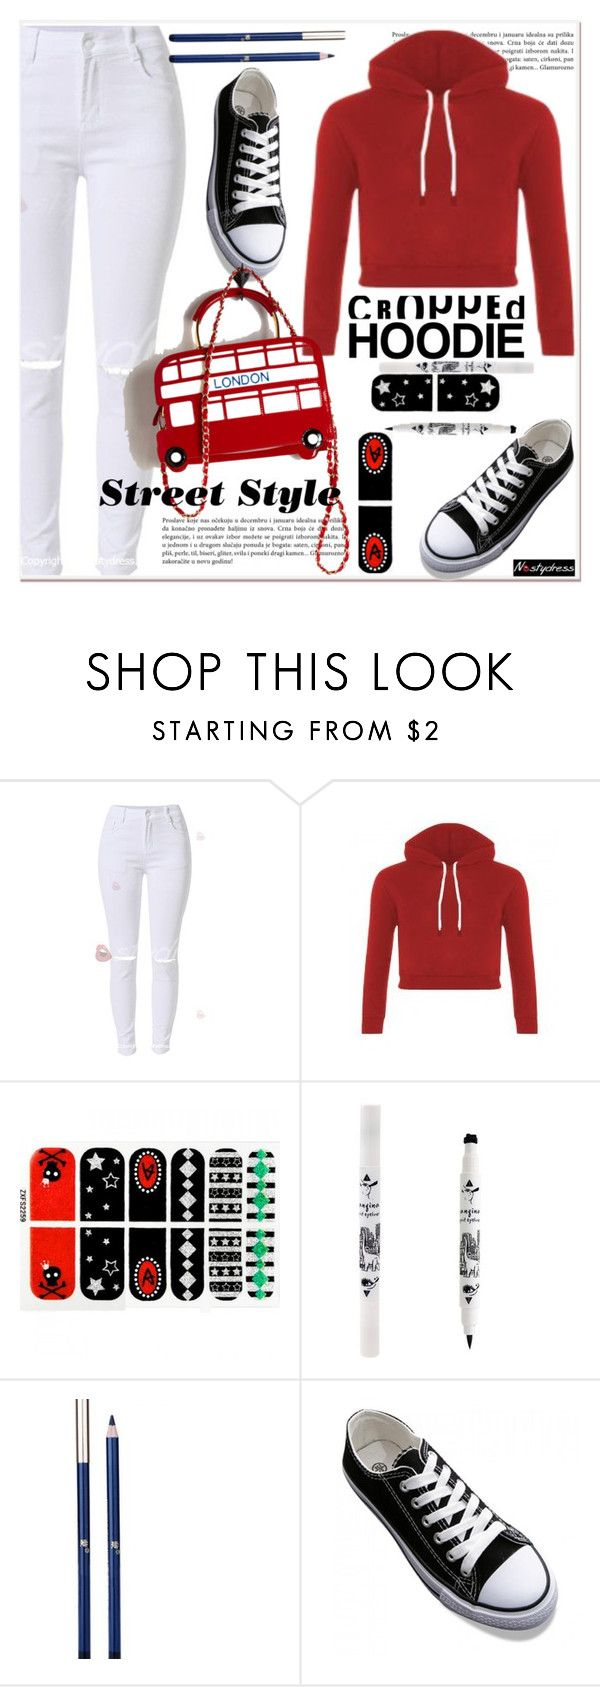 """Cute Trend: Cropped Hoodies 4"" by paculi ❤ liked on Polyvore featuring nastydress and croppedhodie"